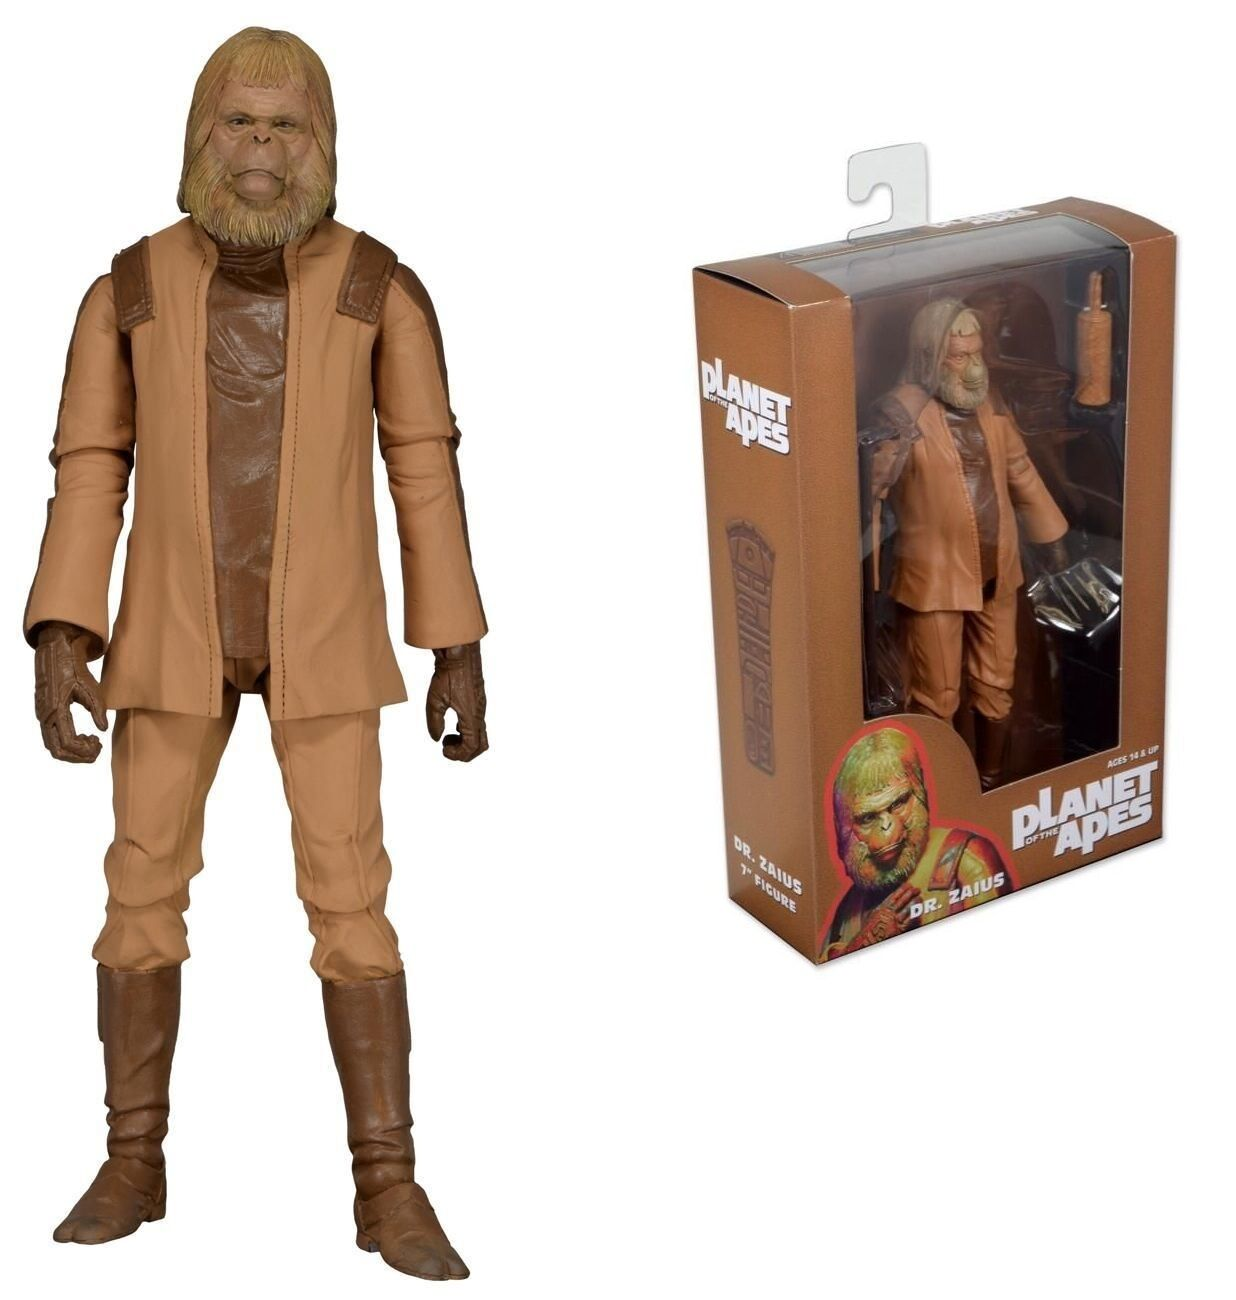 Neca Planet der Affen Dr Zaius Planet of Apes Series 1